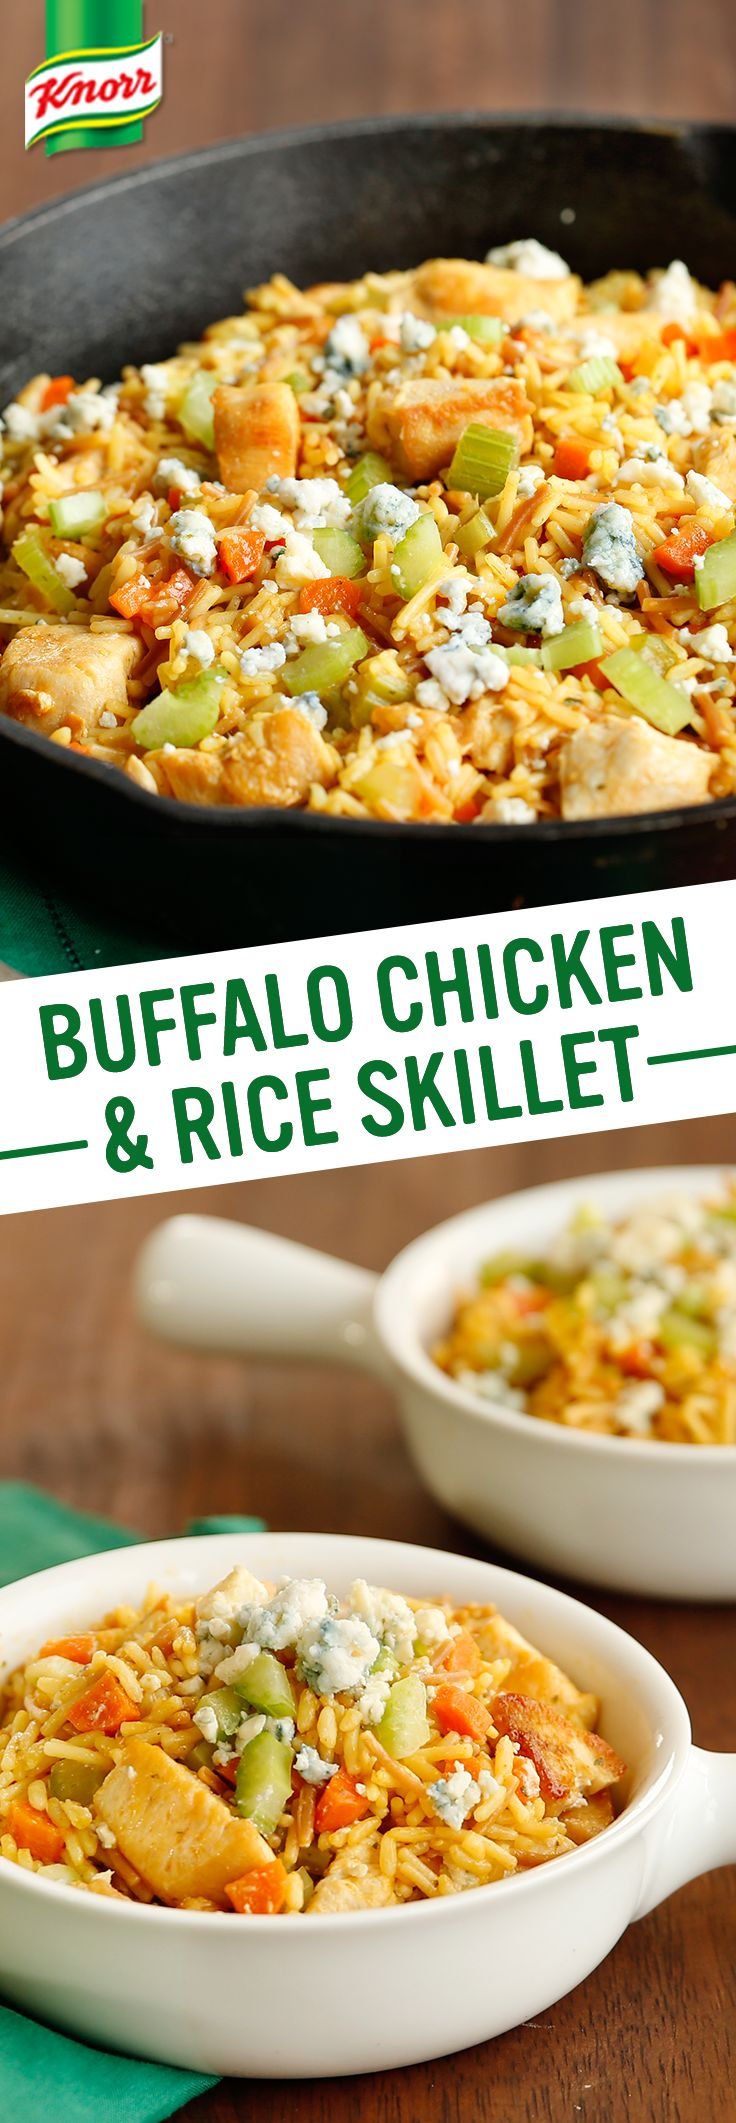 Buffalo Chicken Amp Rice Skillet Recipe More Supper Bowl